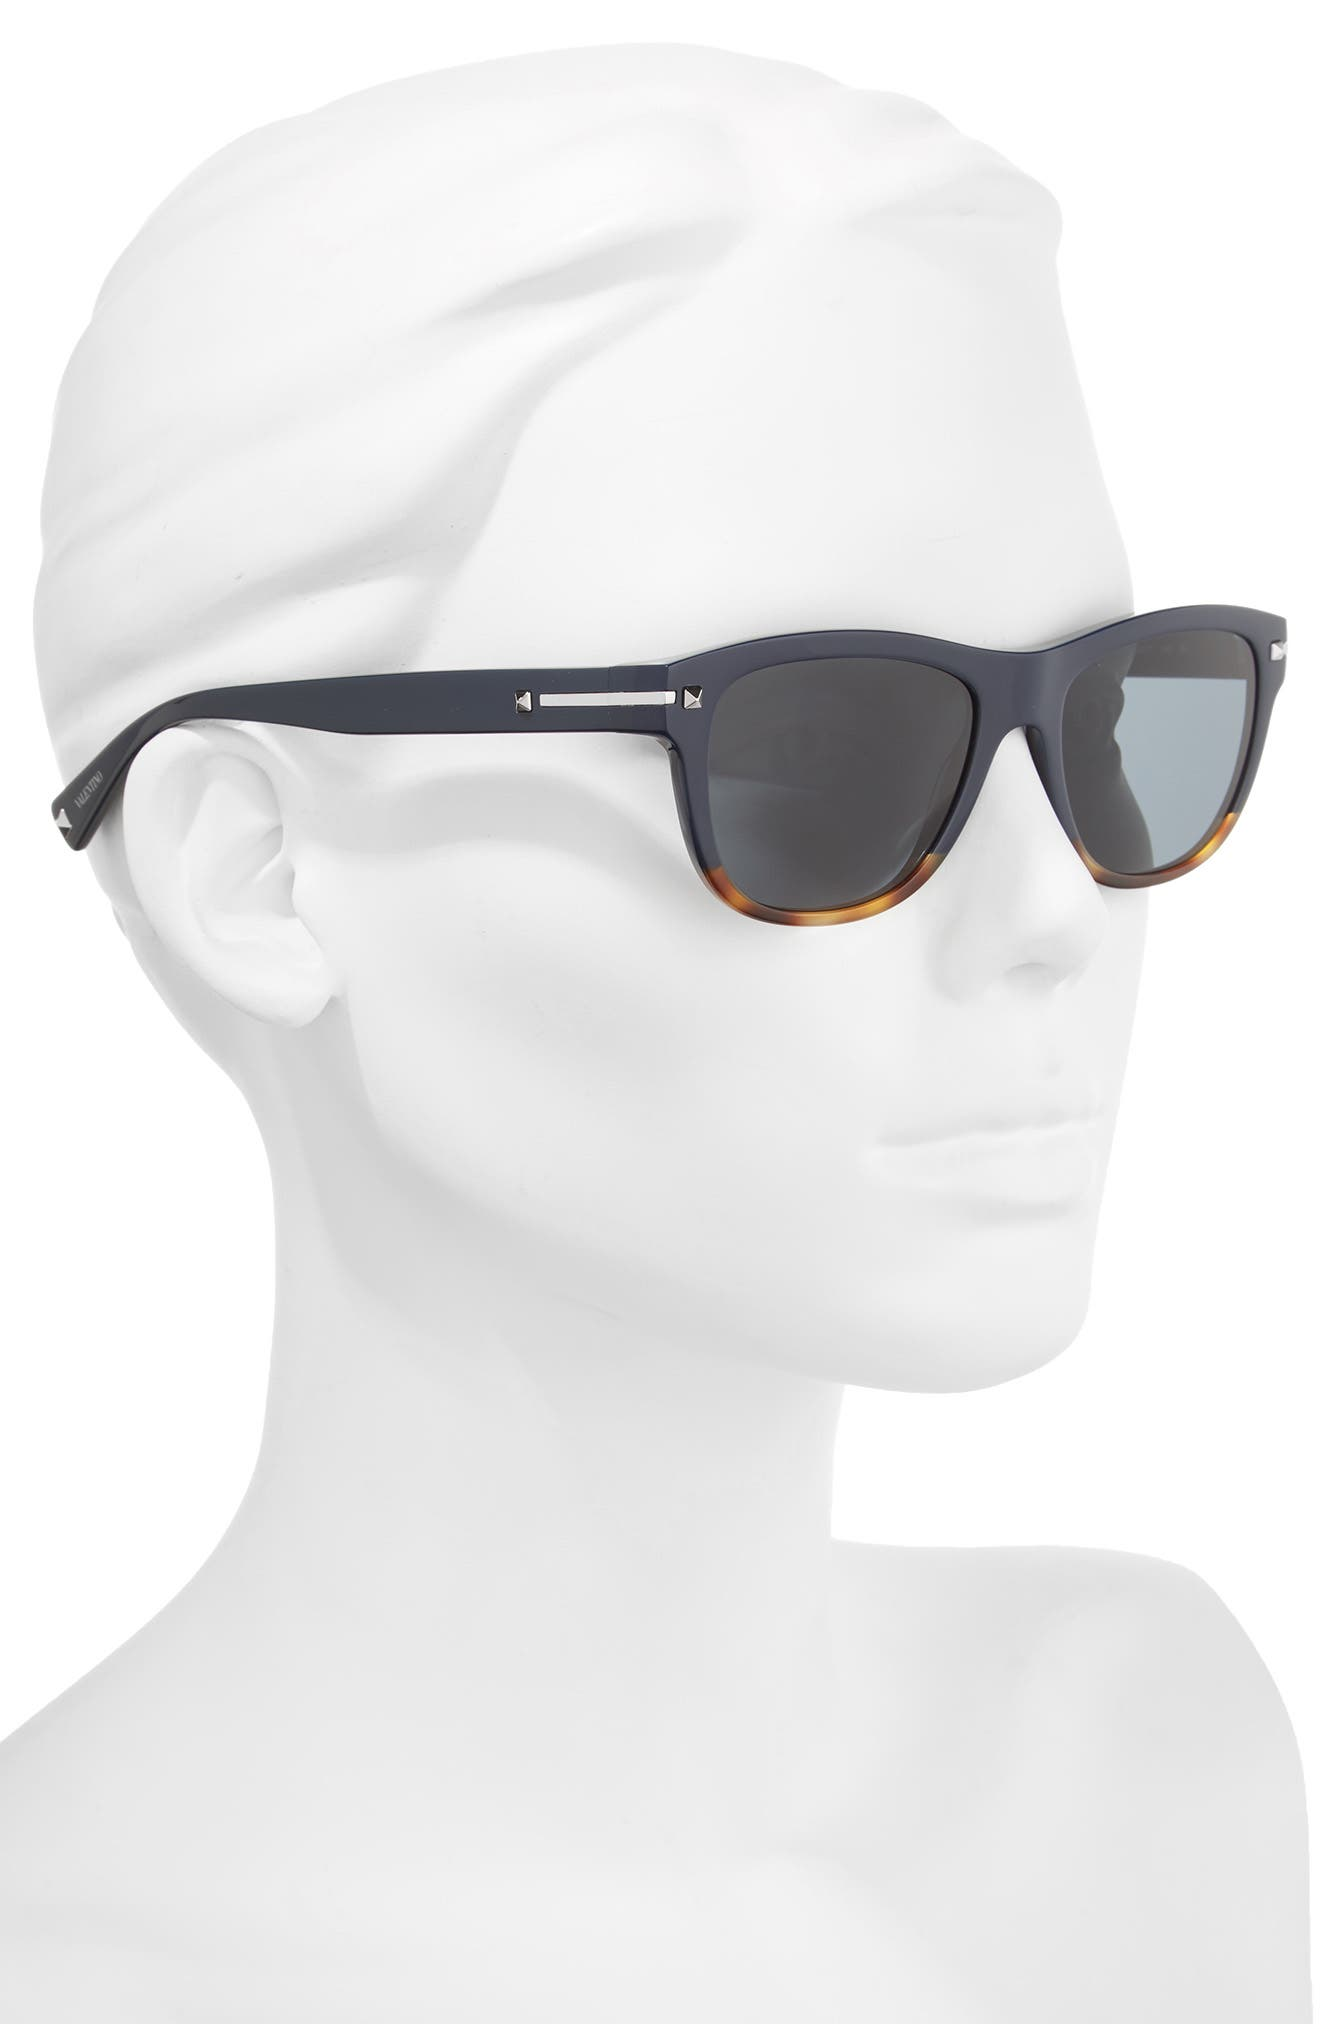 53mm Rectangle Sunglasses,                             Alternate thumbnail 2, color,